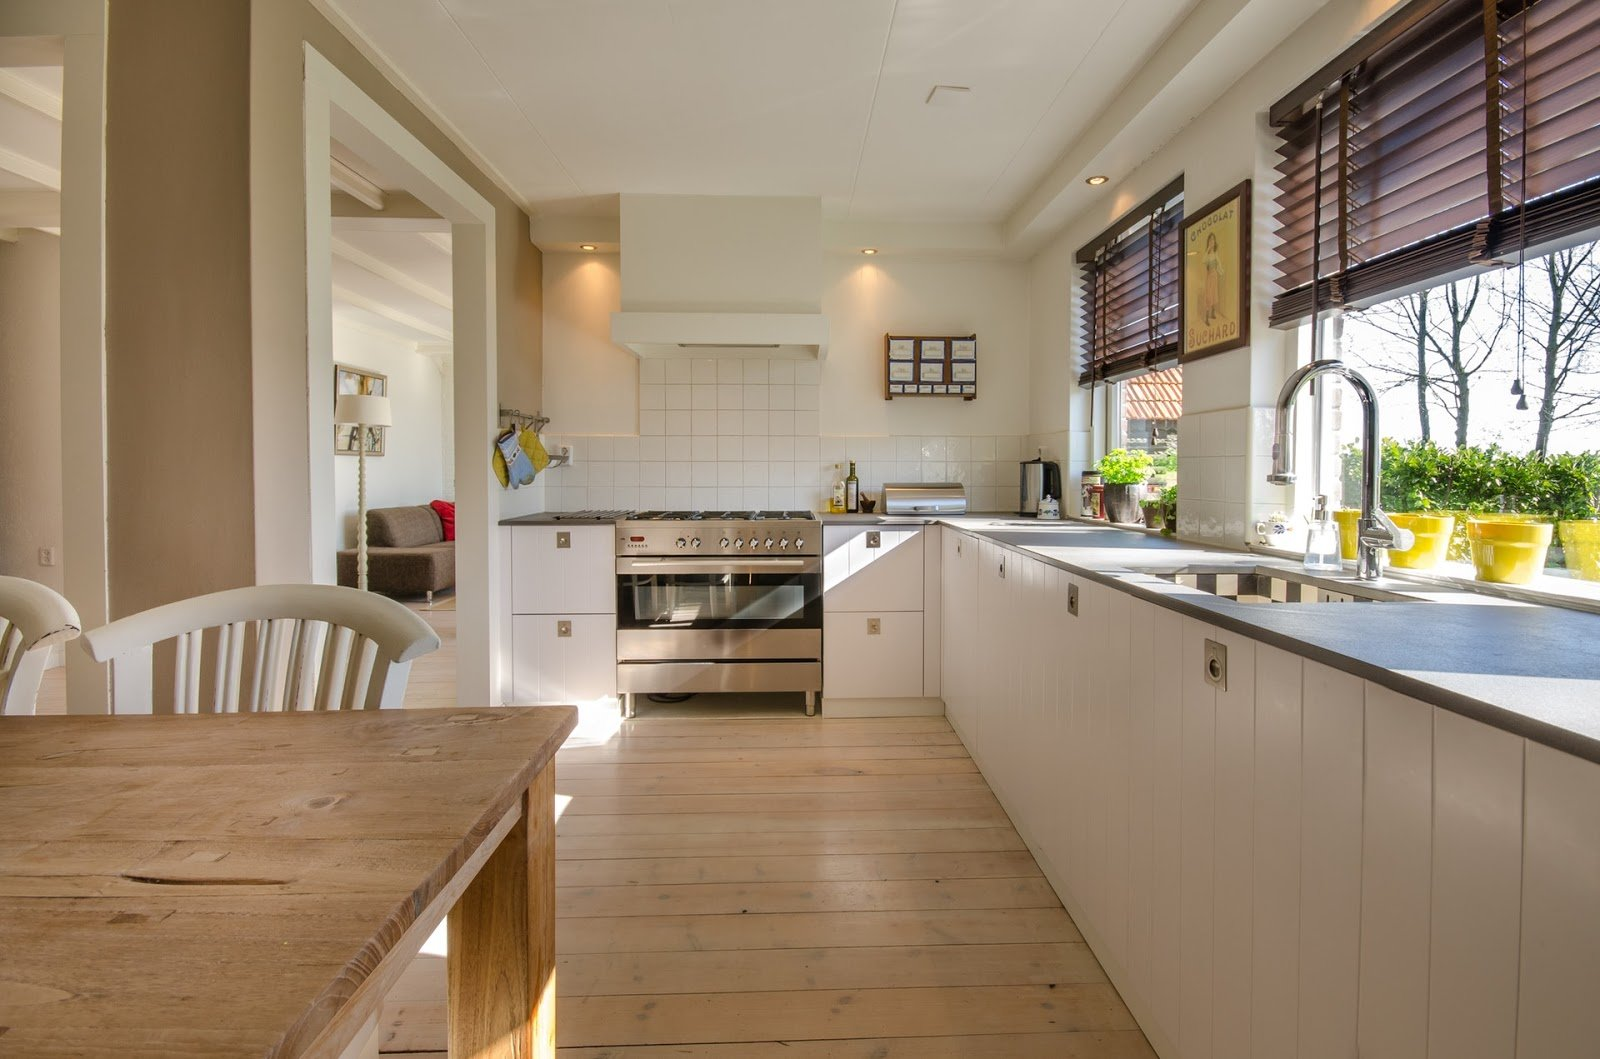 increase your kitchen's value